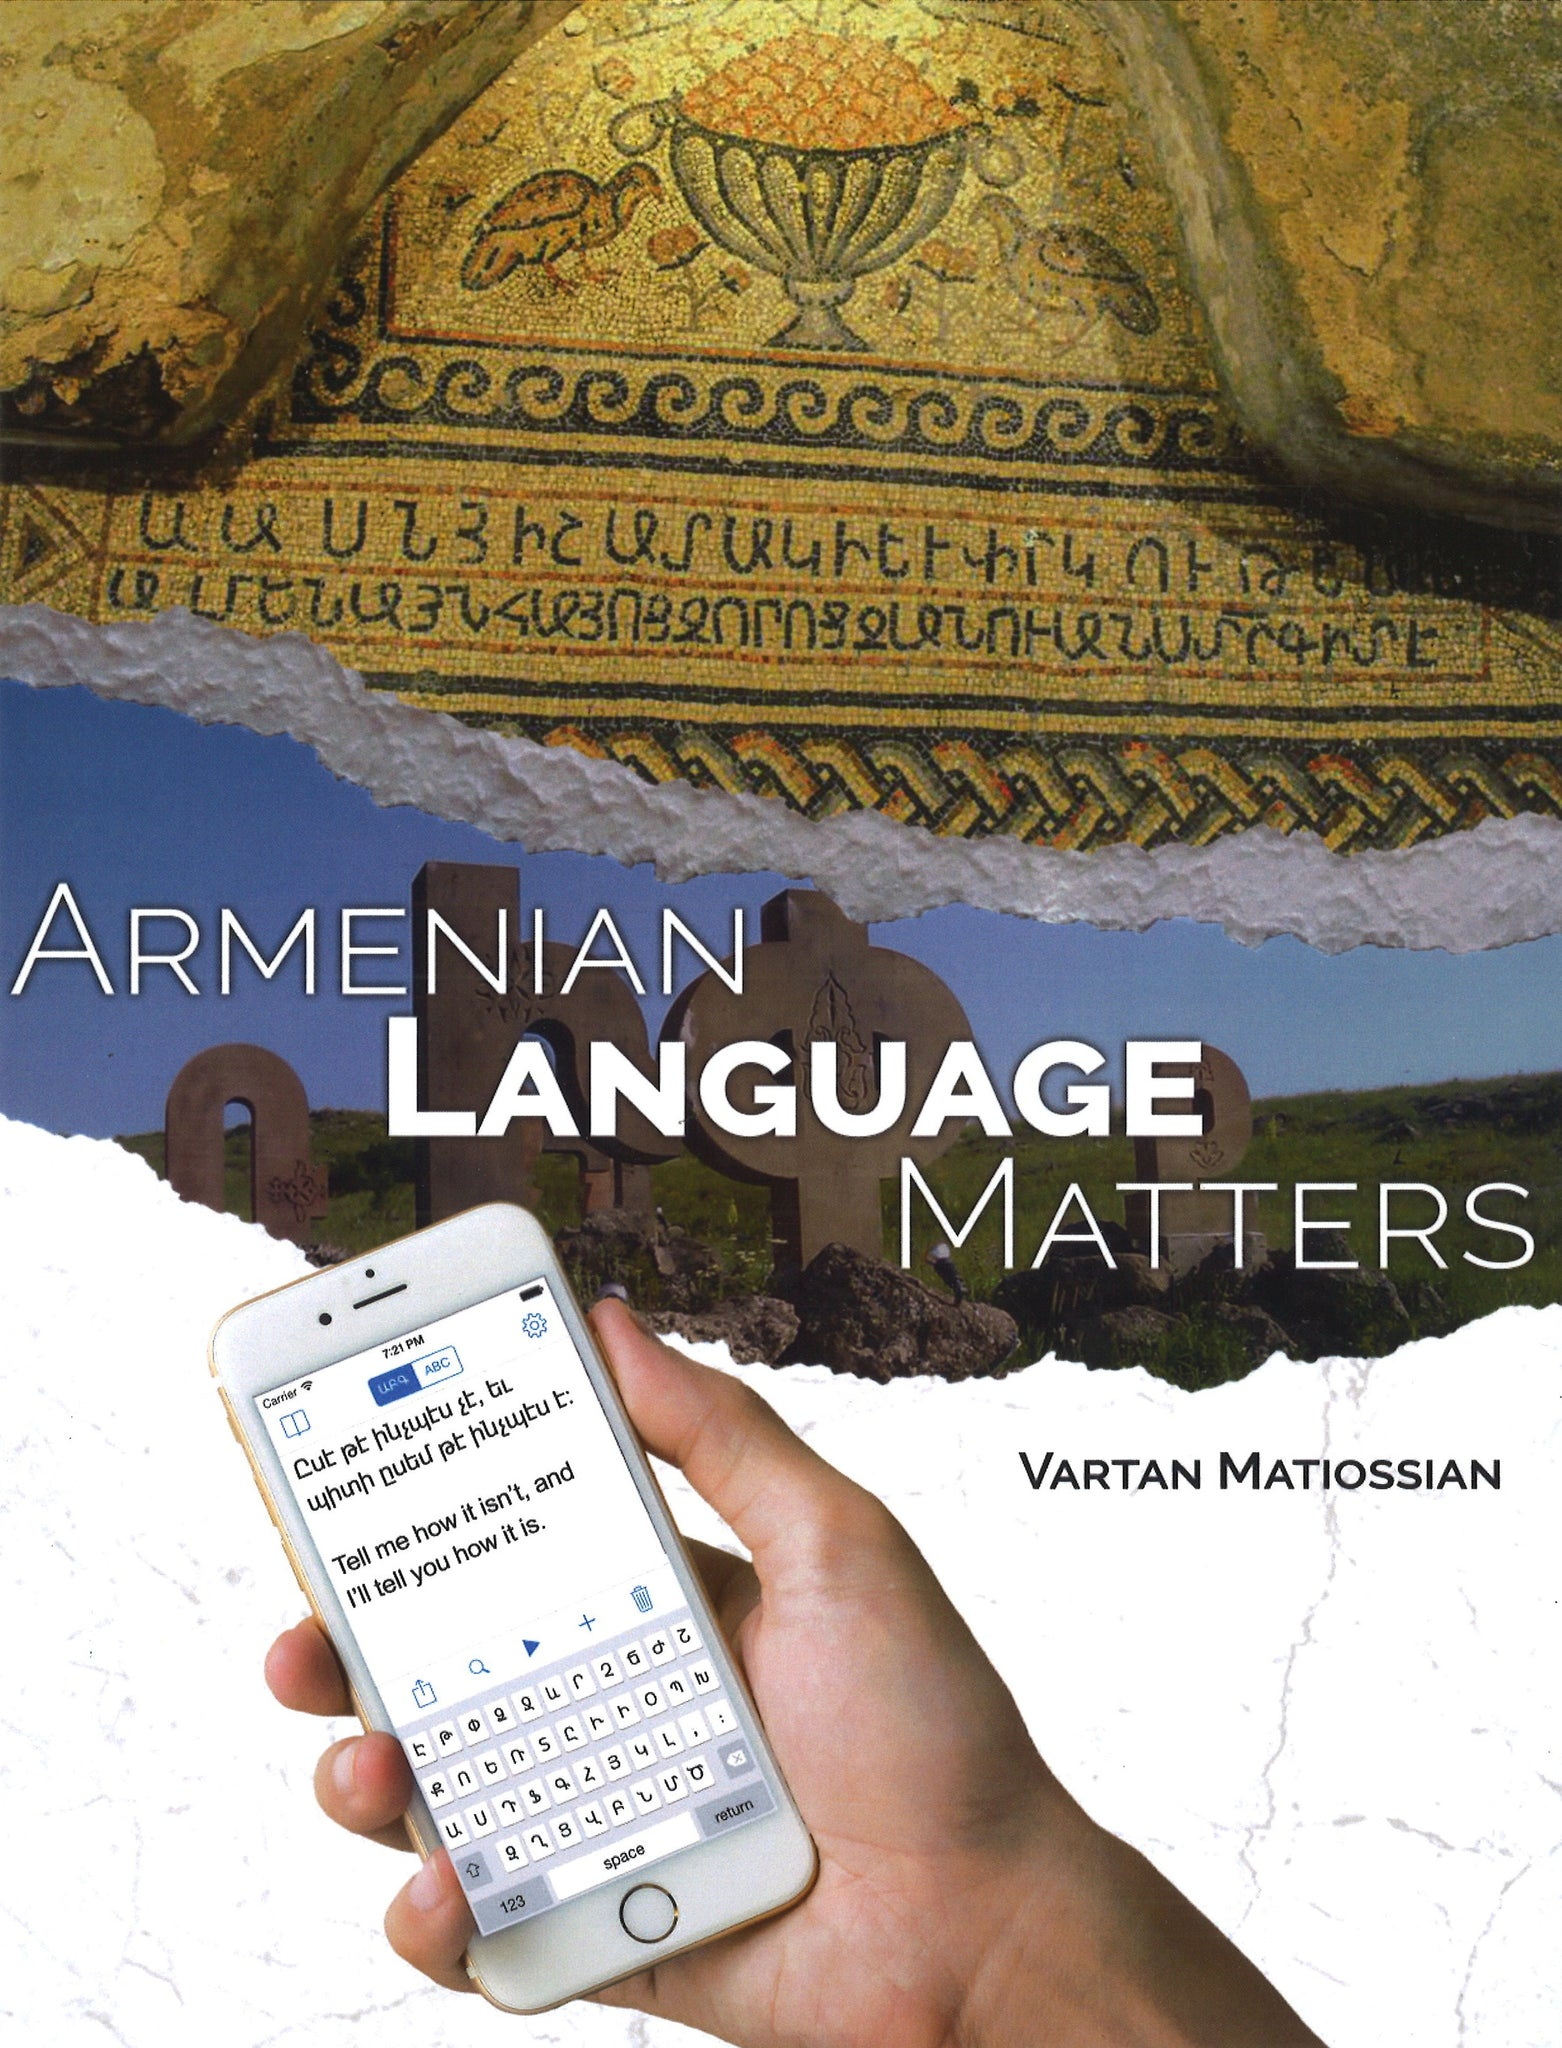 ARMENIAN LANGUAGE MATTERS